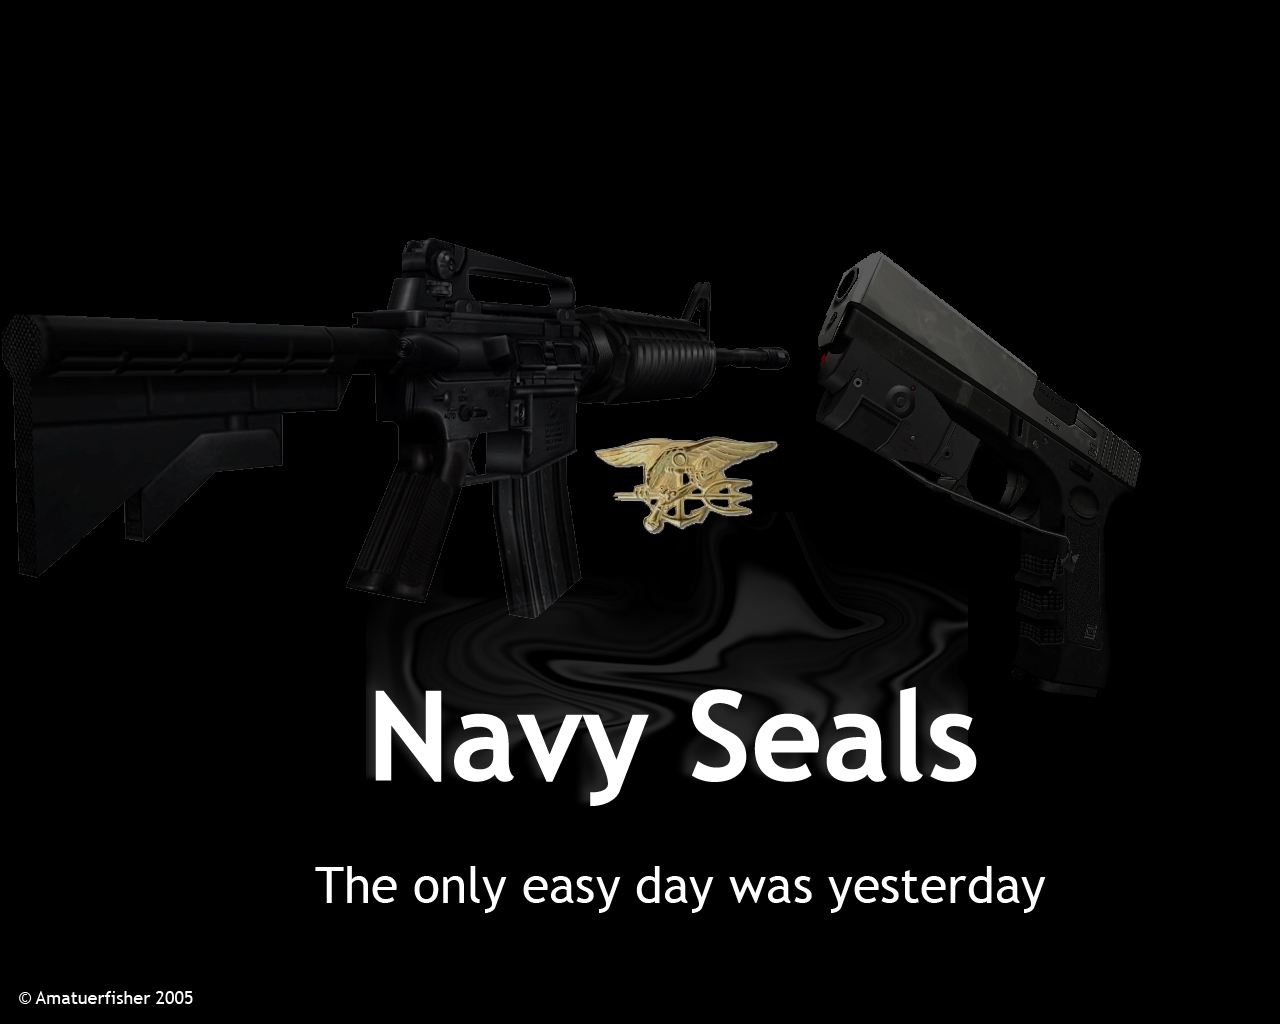 Download Navy Seals Logo Wallpaper Gallery